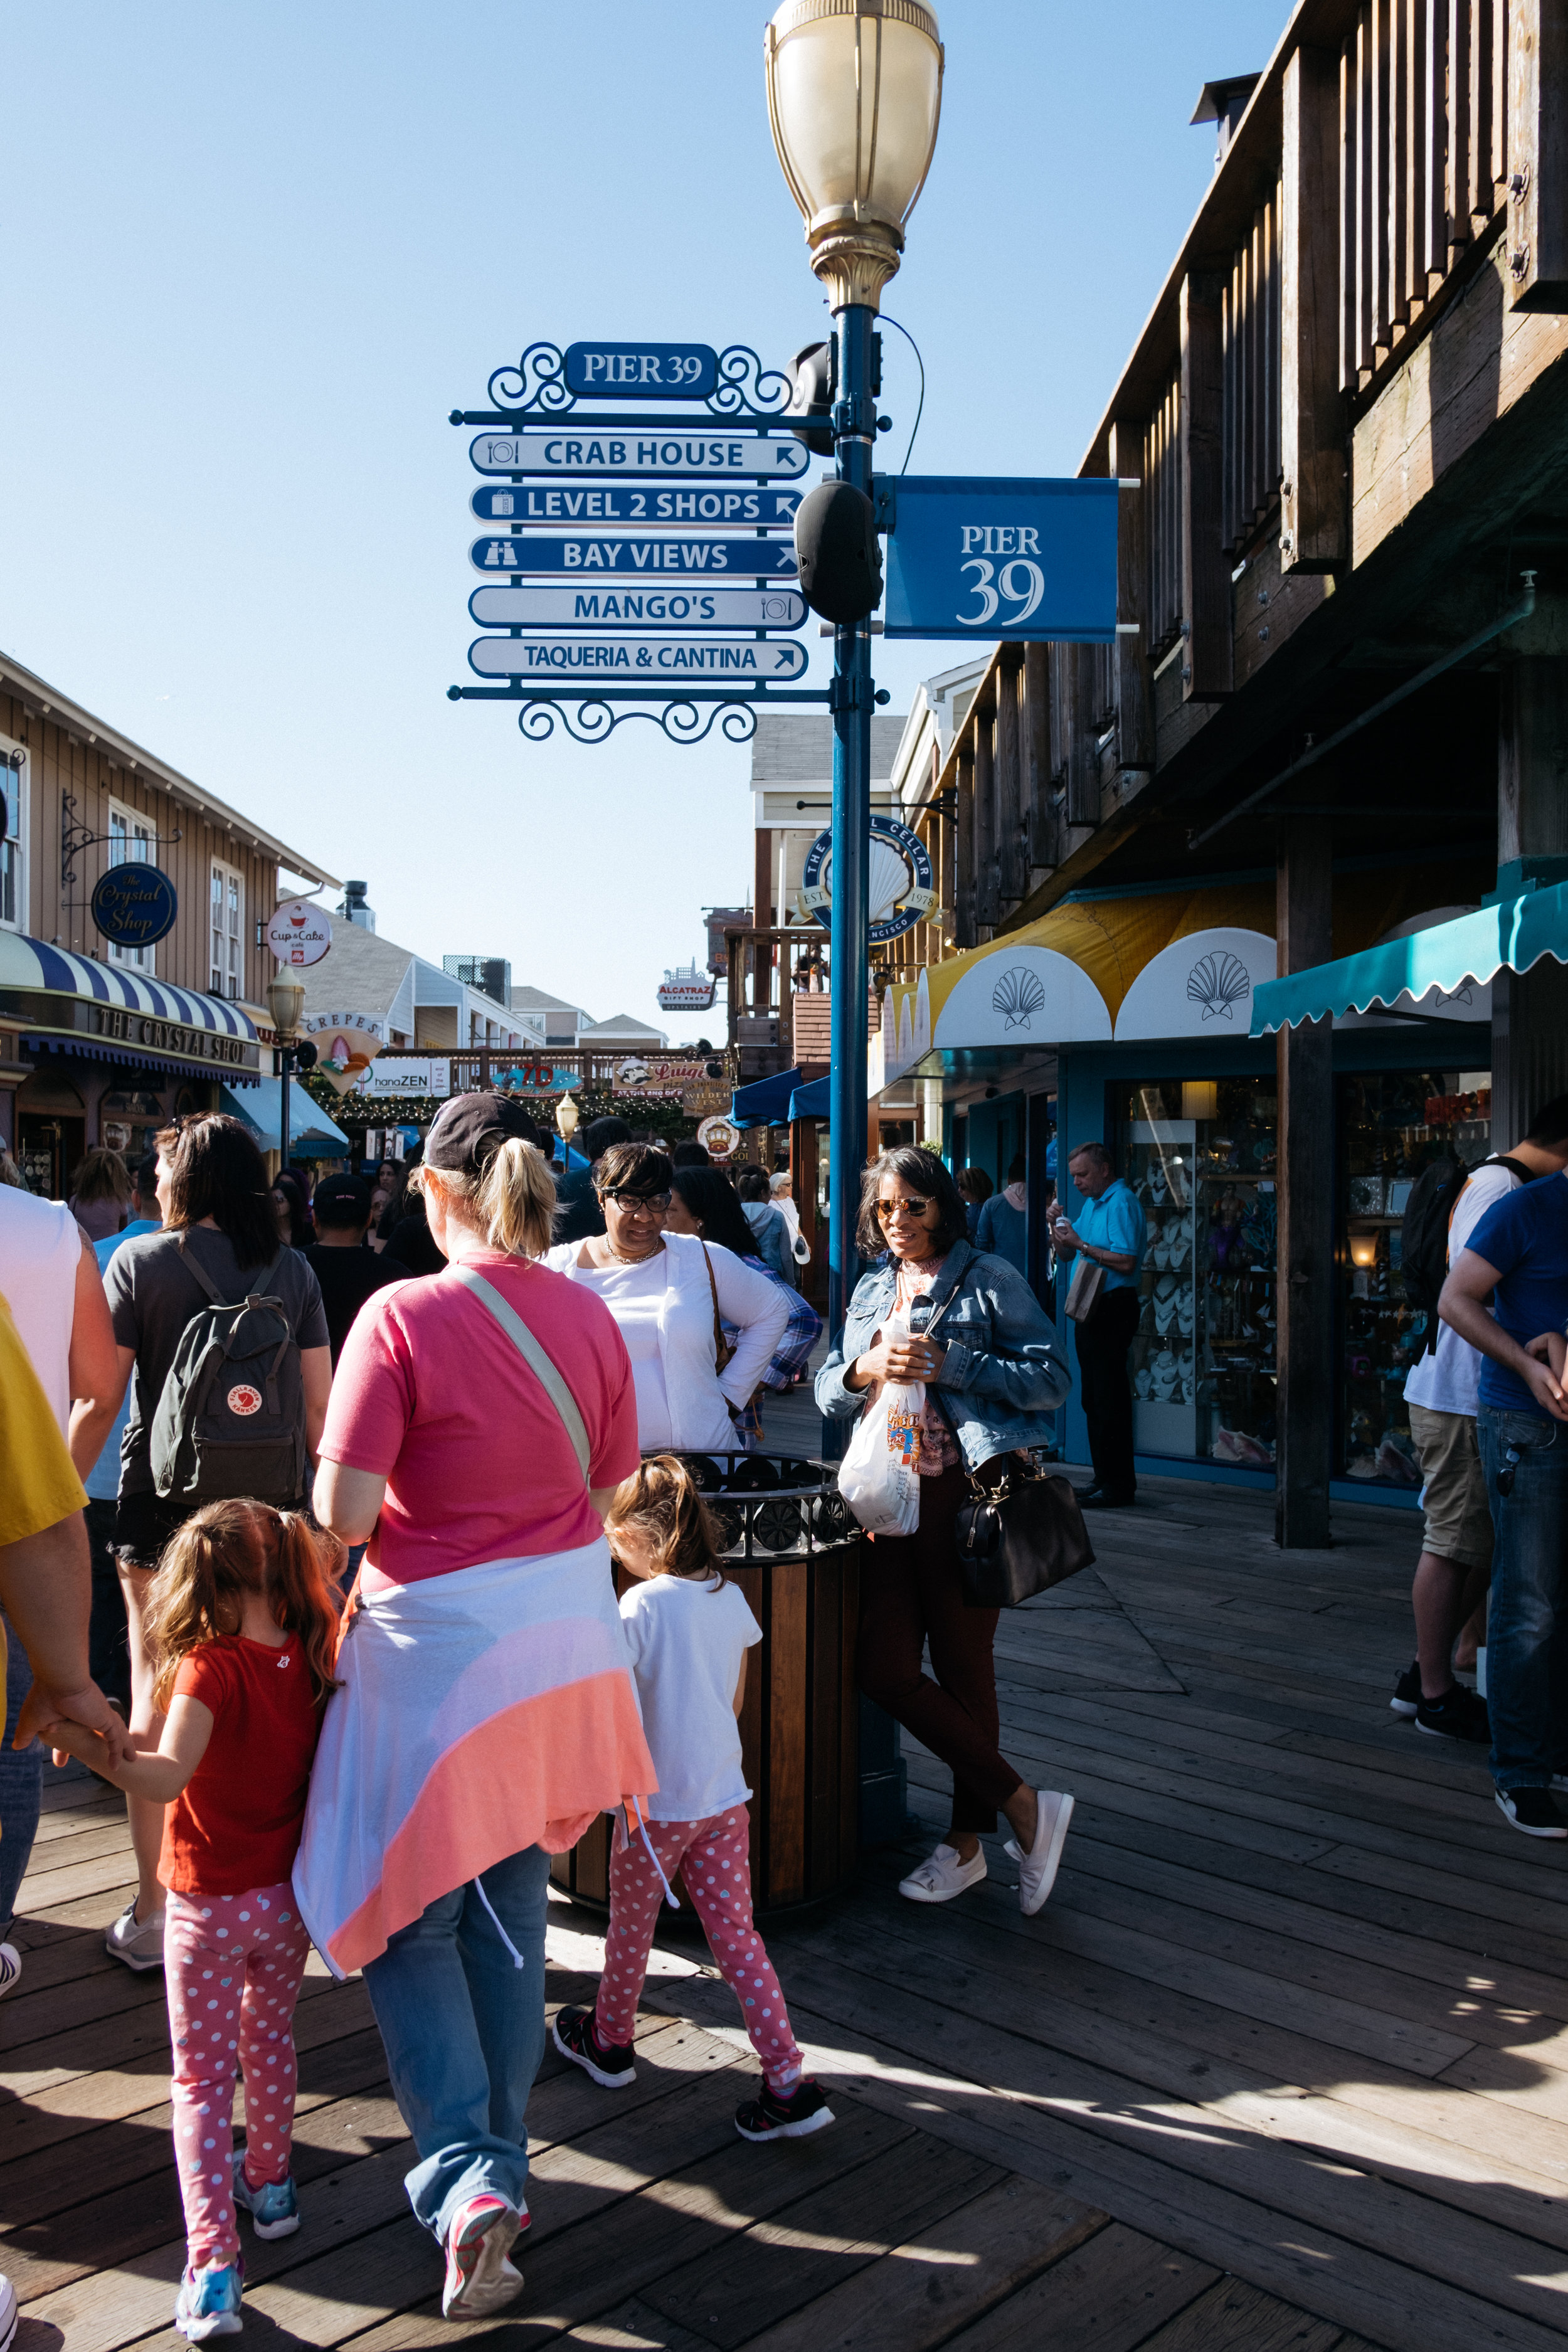 documentary photography pier 39 in San Francisco